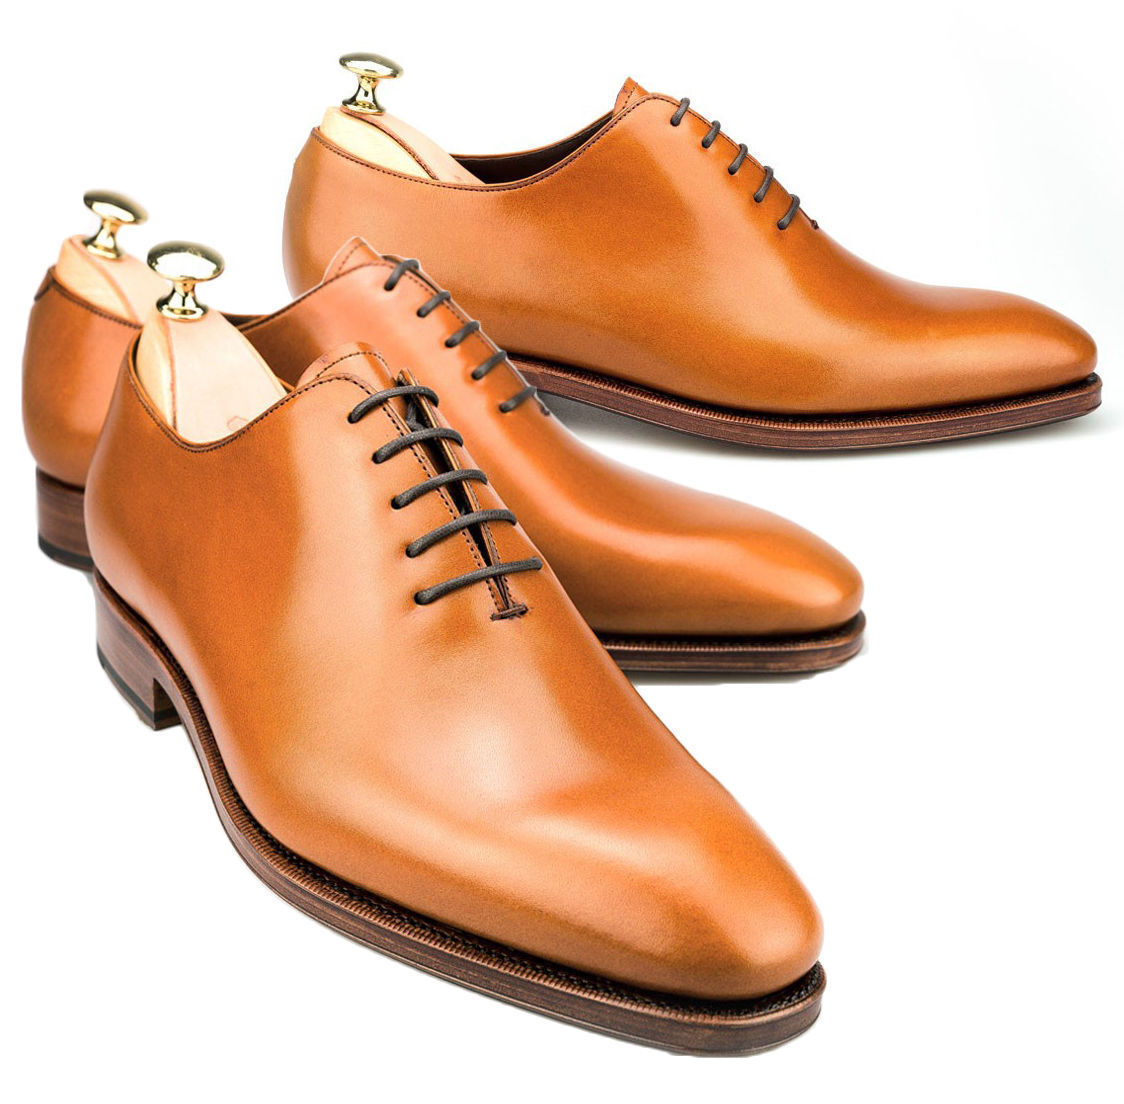 MEN NEU HANDMADE LEATHER Schuhe OXFORD TAN DRESS FASHION FORMAL Schuhe